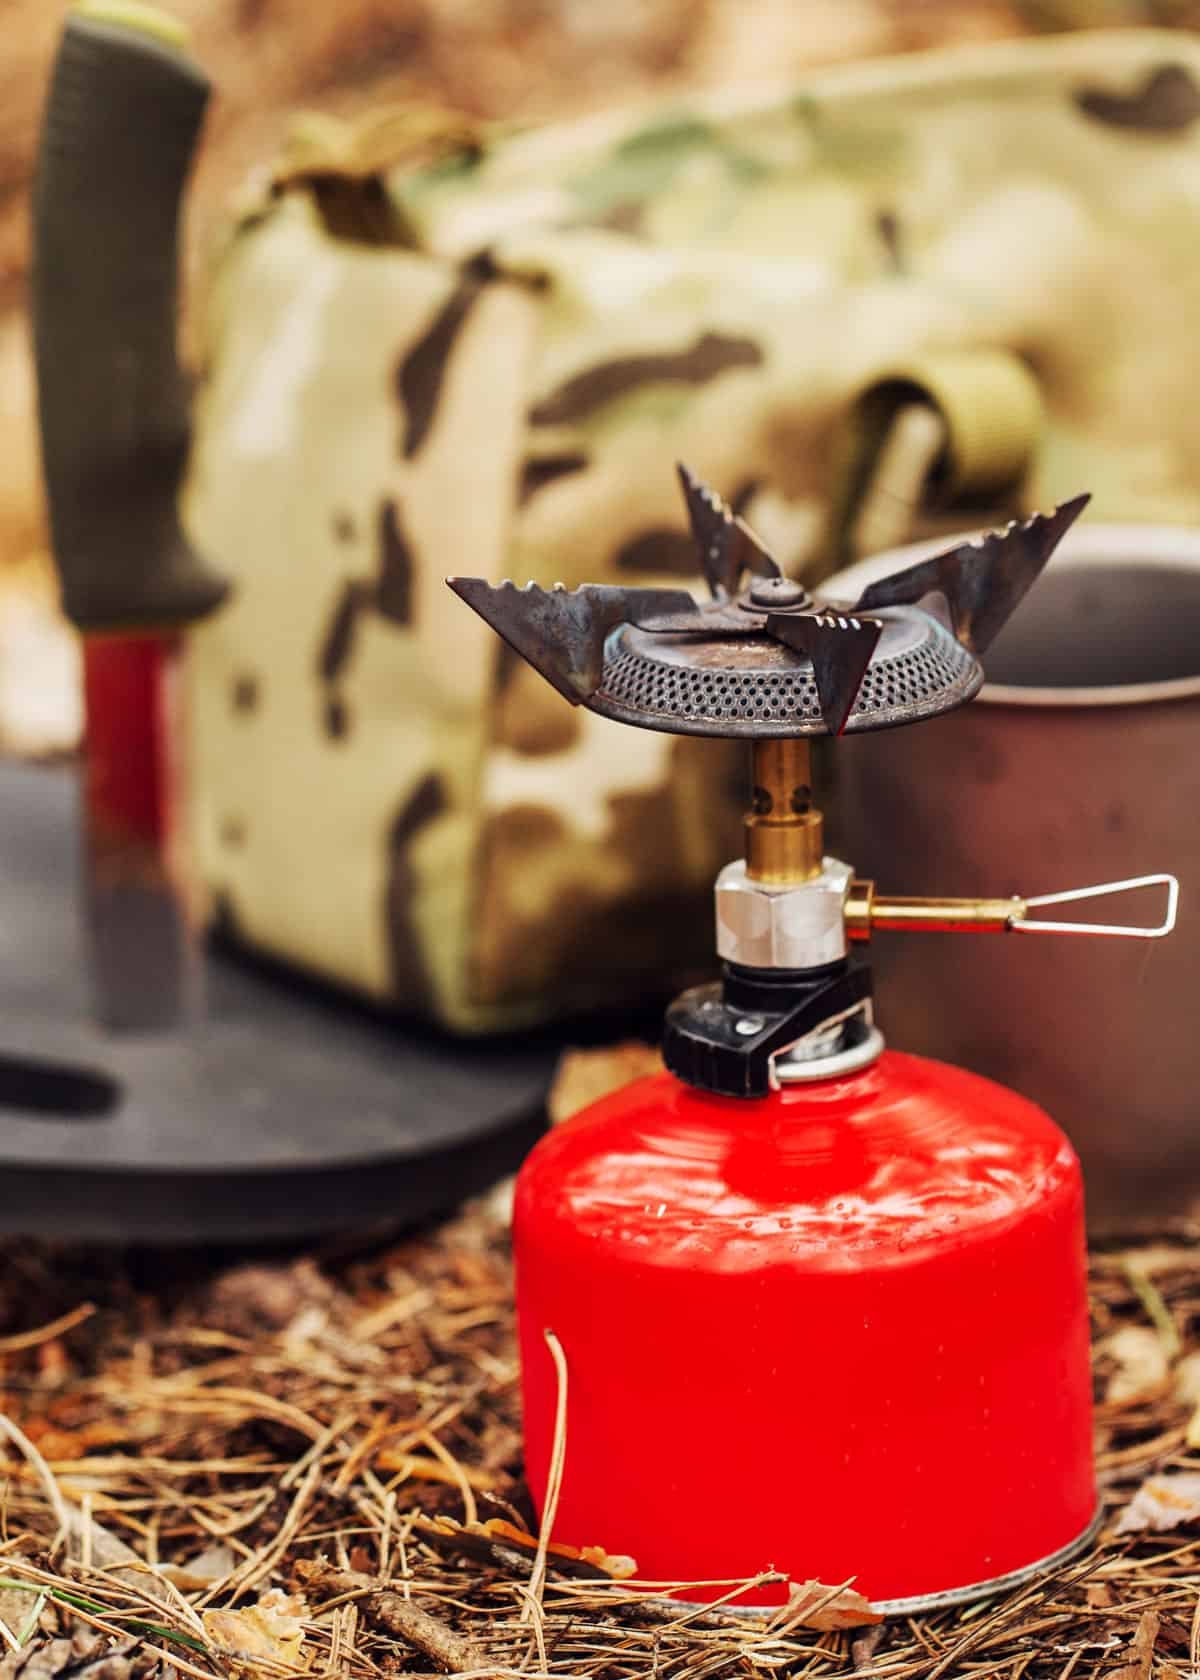 Best camp stove